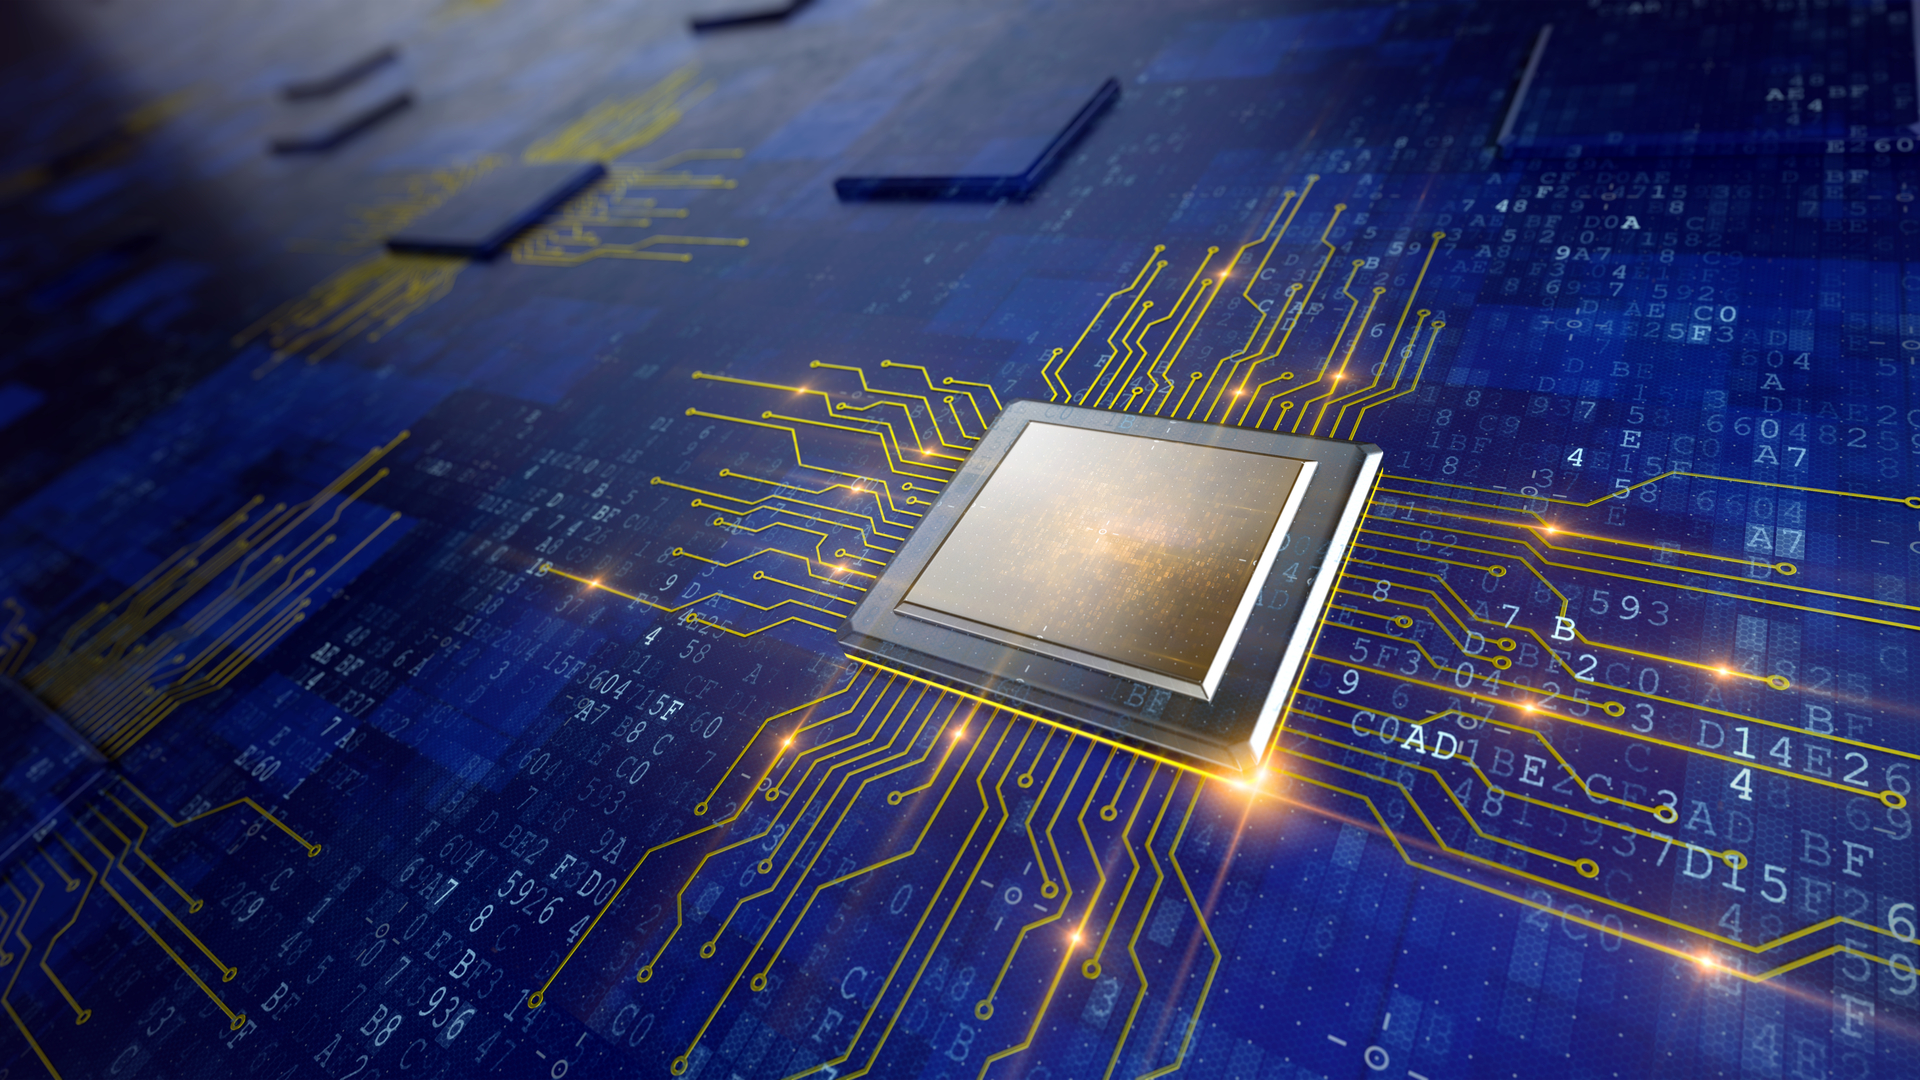 AMD Zen 4 processors could destroy Intel thanks to their 5nm designs